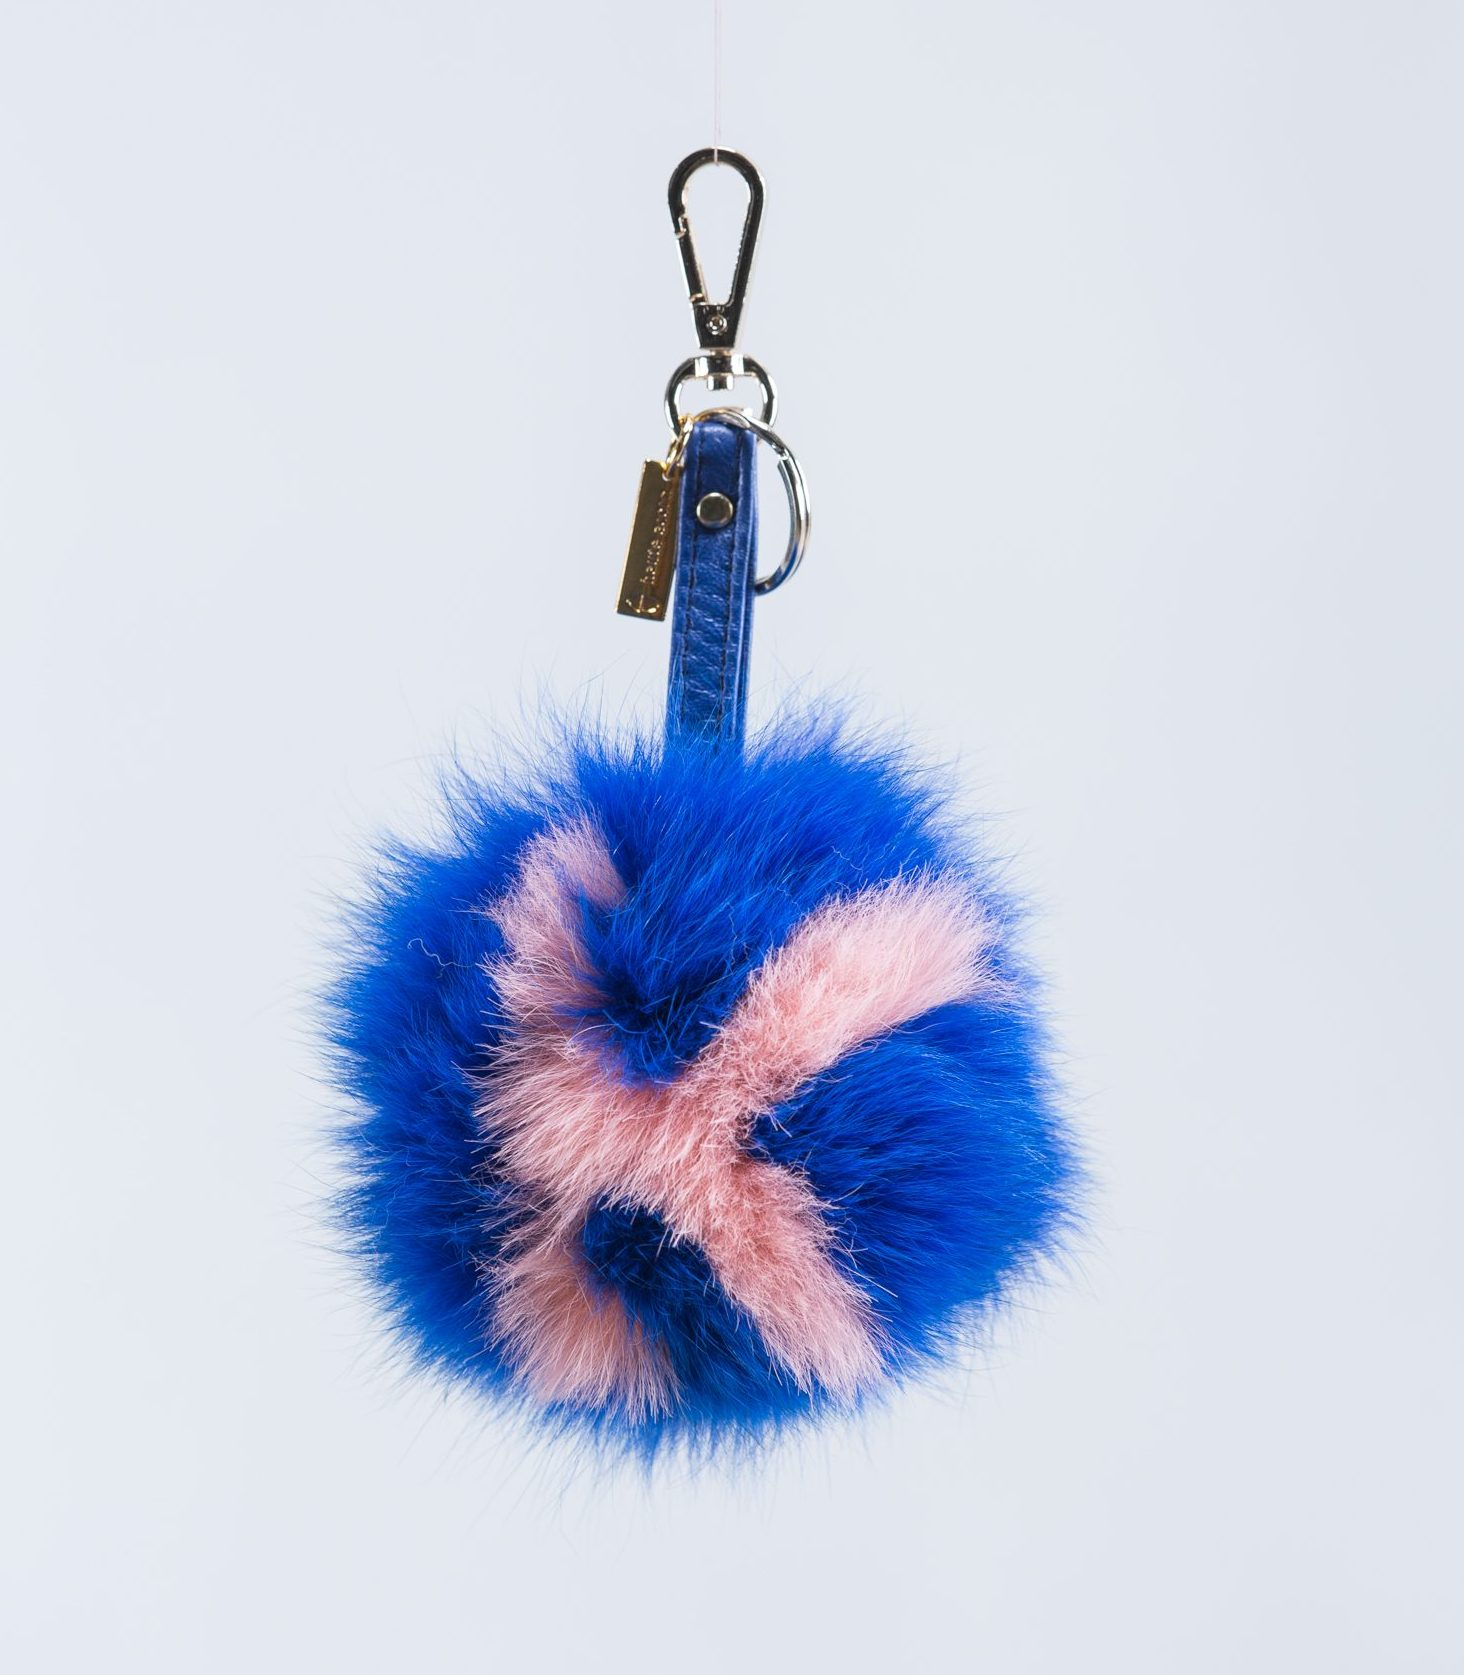 Fur Bag Charm With K Letter. 100% Real Fur Keychains. ea2710d97